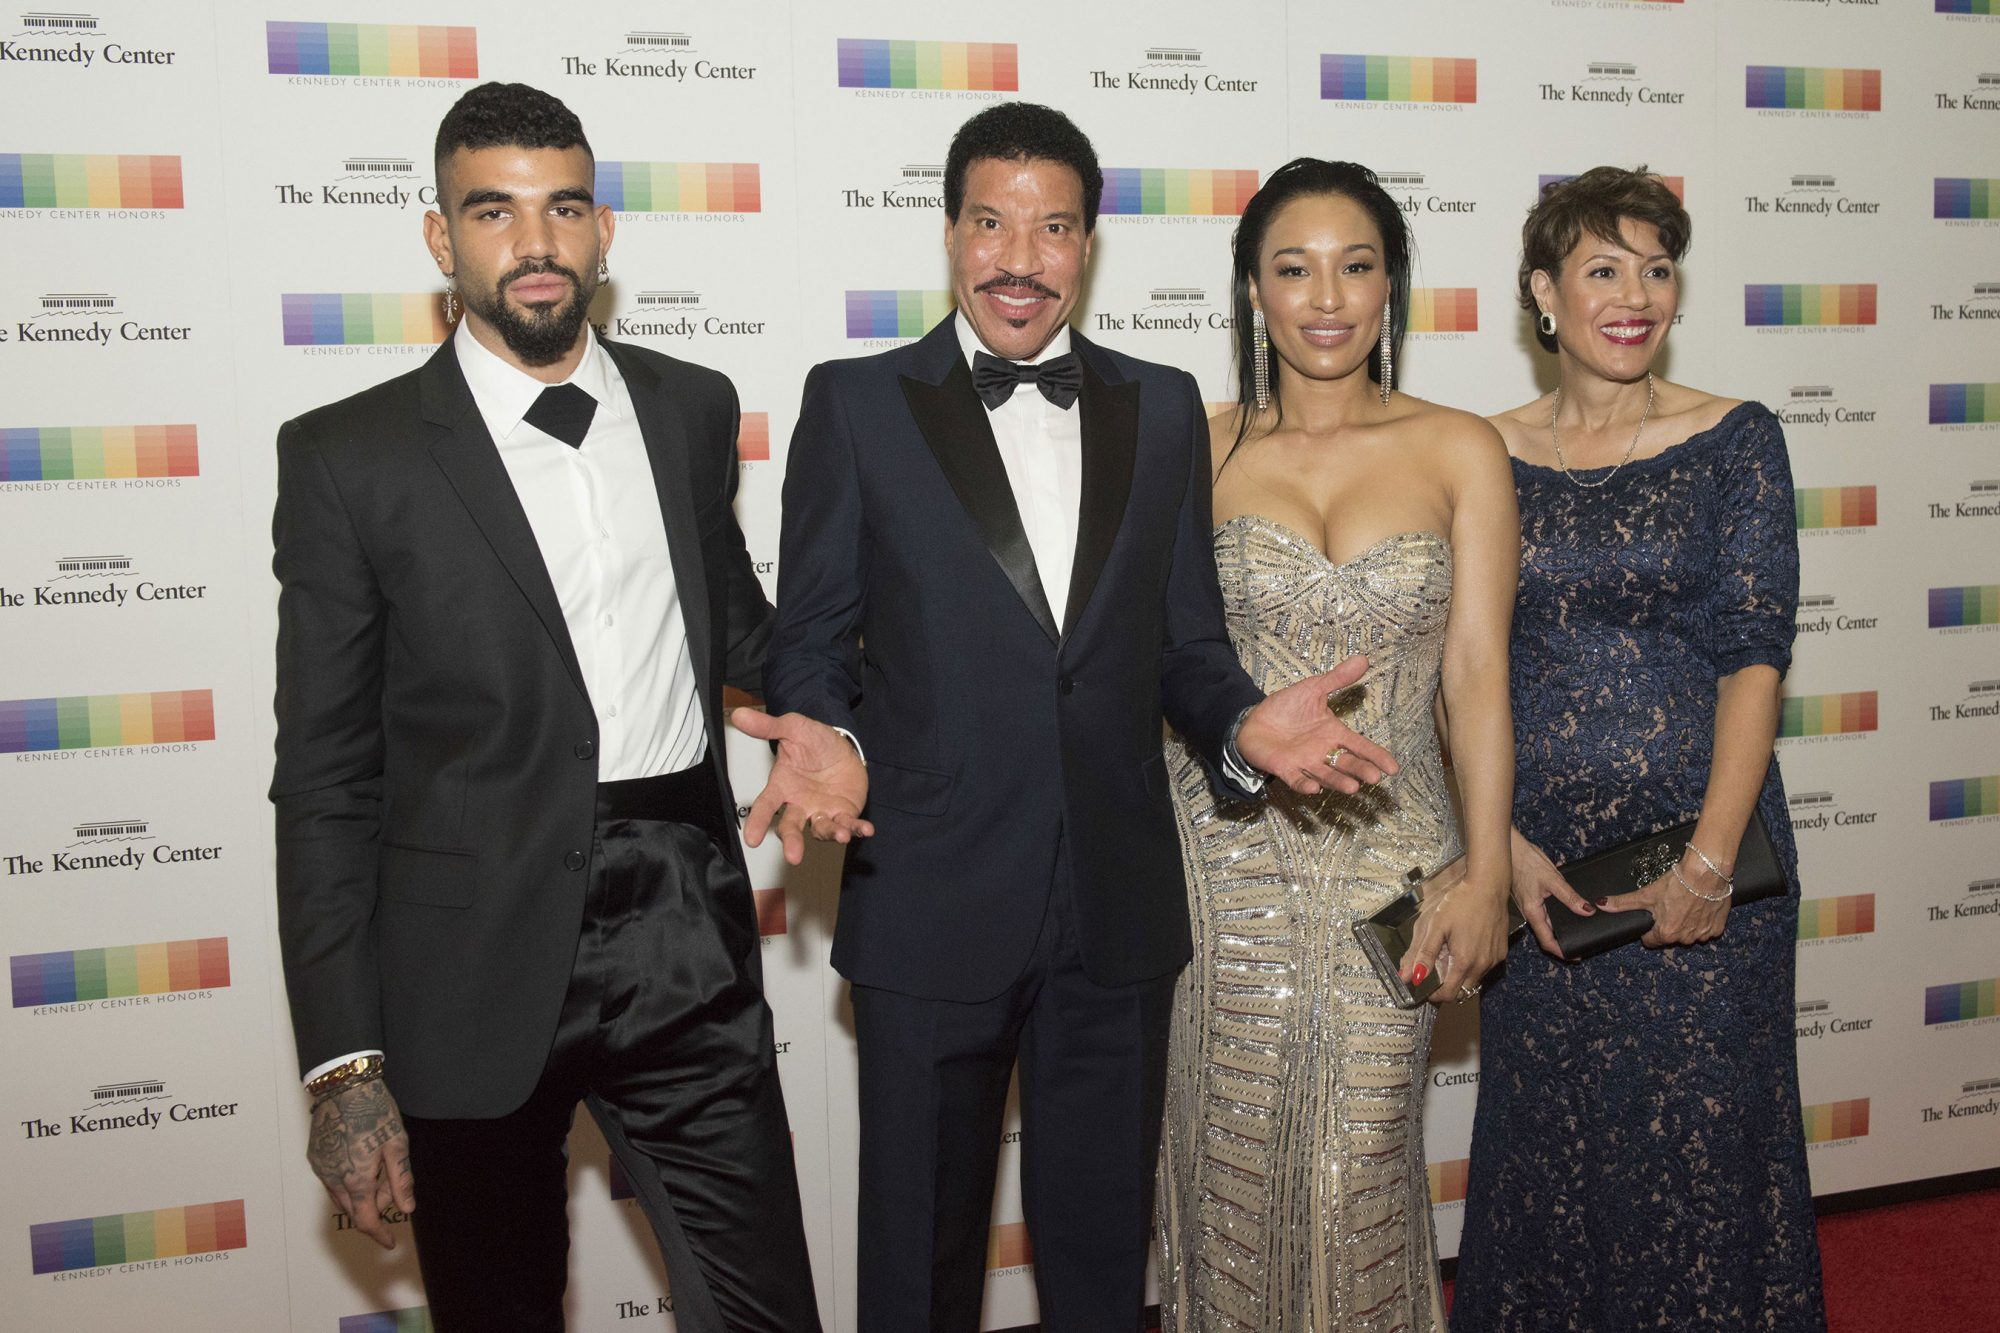 Kennedy Center Honors State Department, Washington, USA - 02 Dec 2017